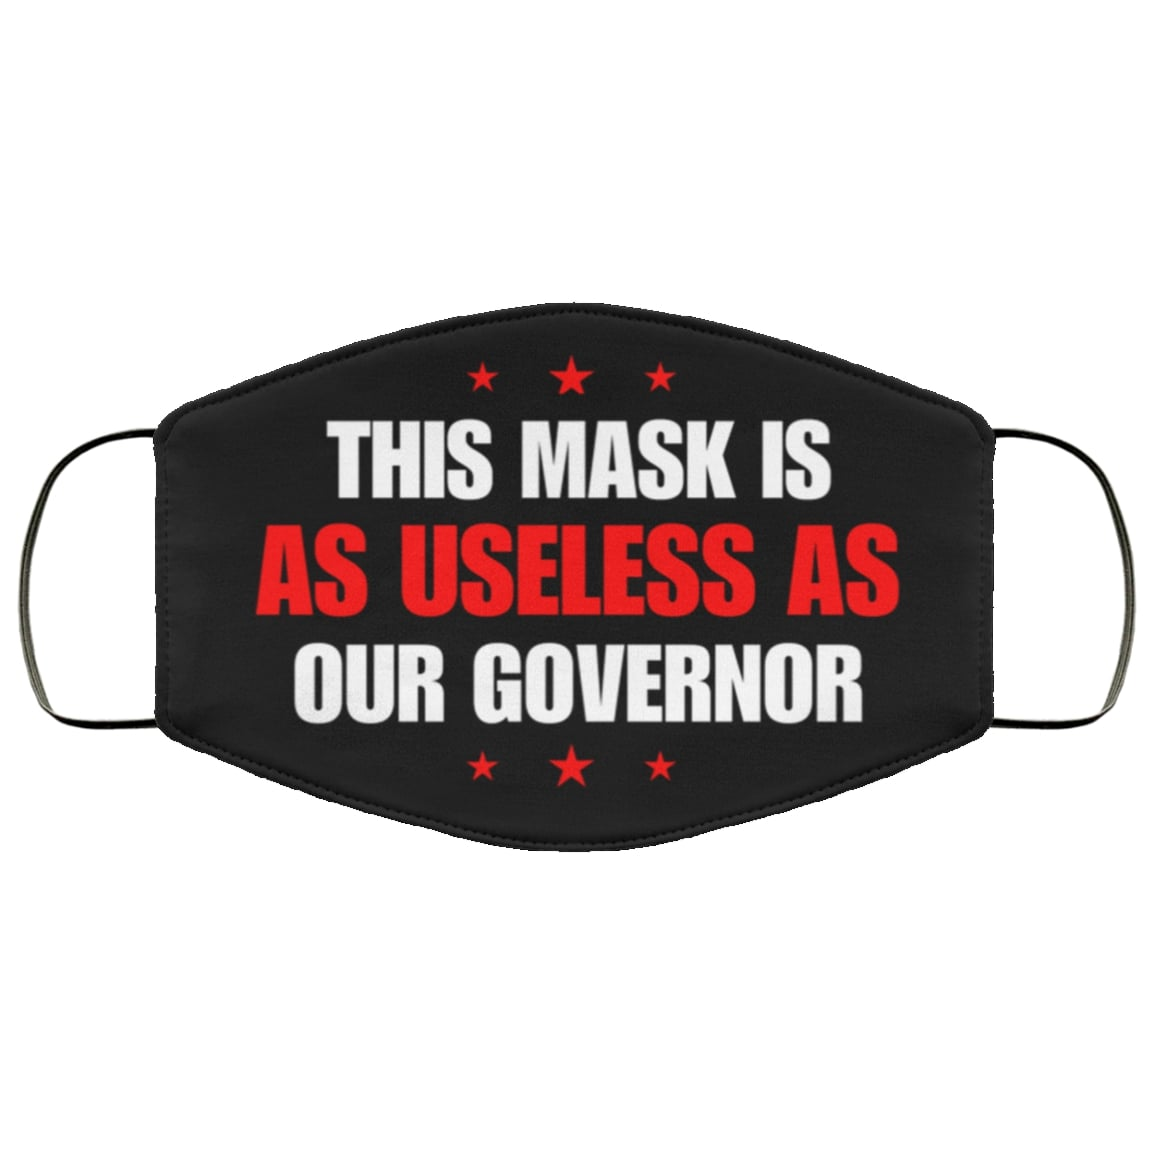 This mask is as useless as our governor full over printed face mask 1